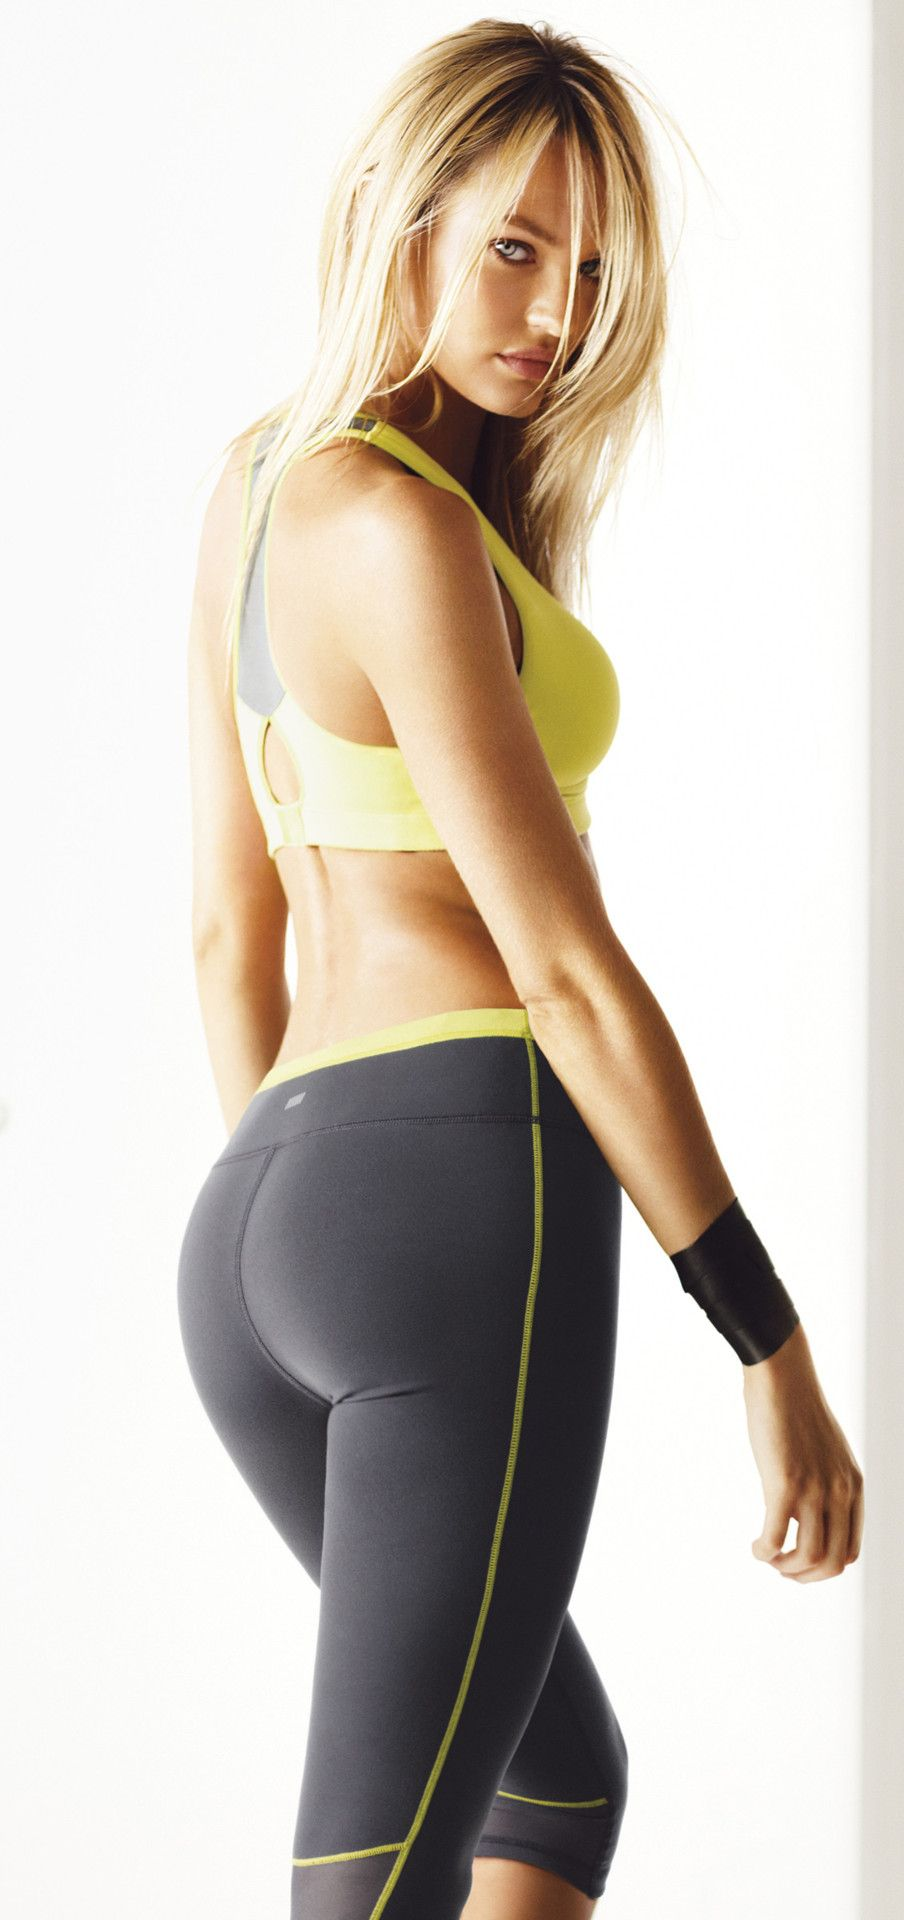 i would love to wear her workout clothes - immediately after she